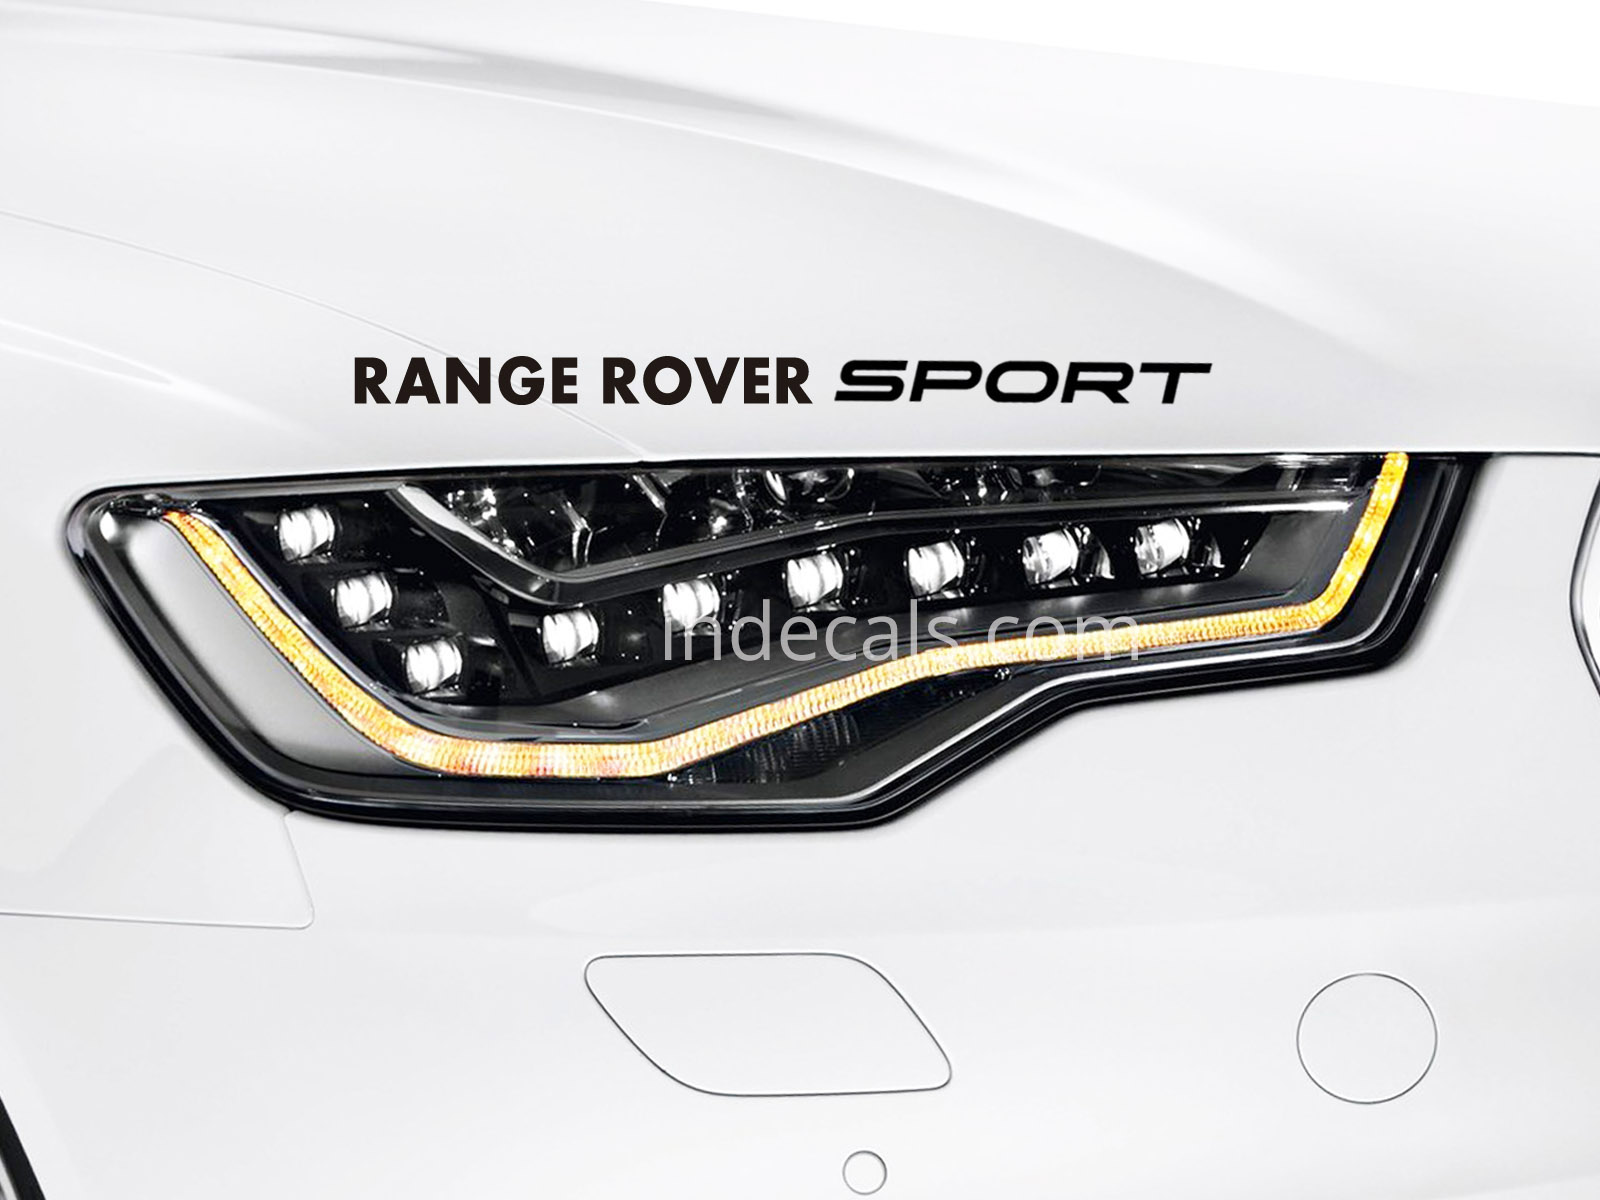 1 x Range Rover Sport Sticker - Black